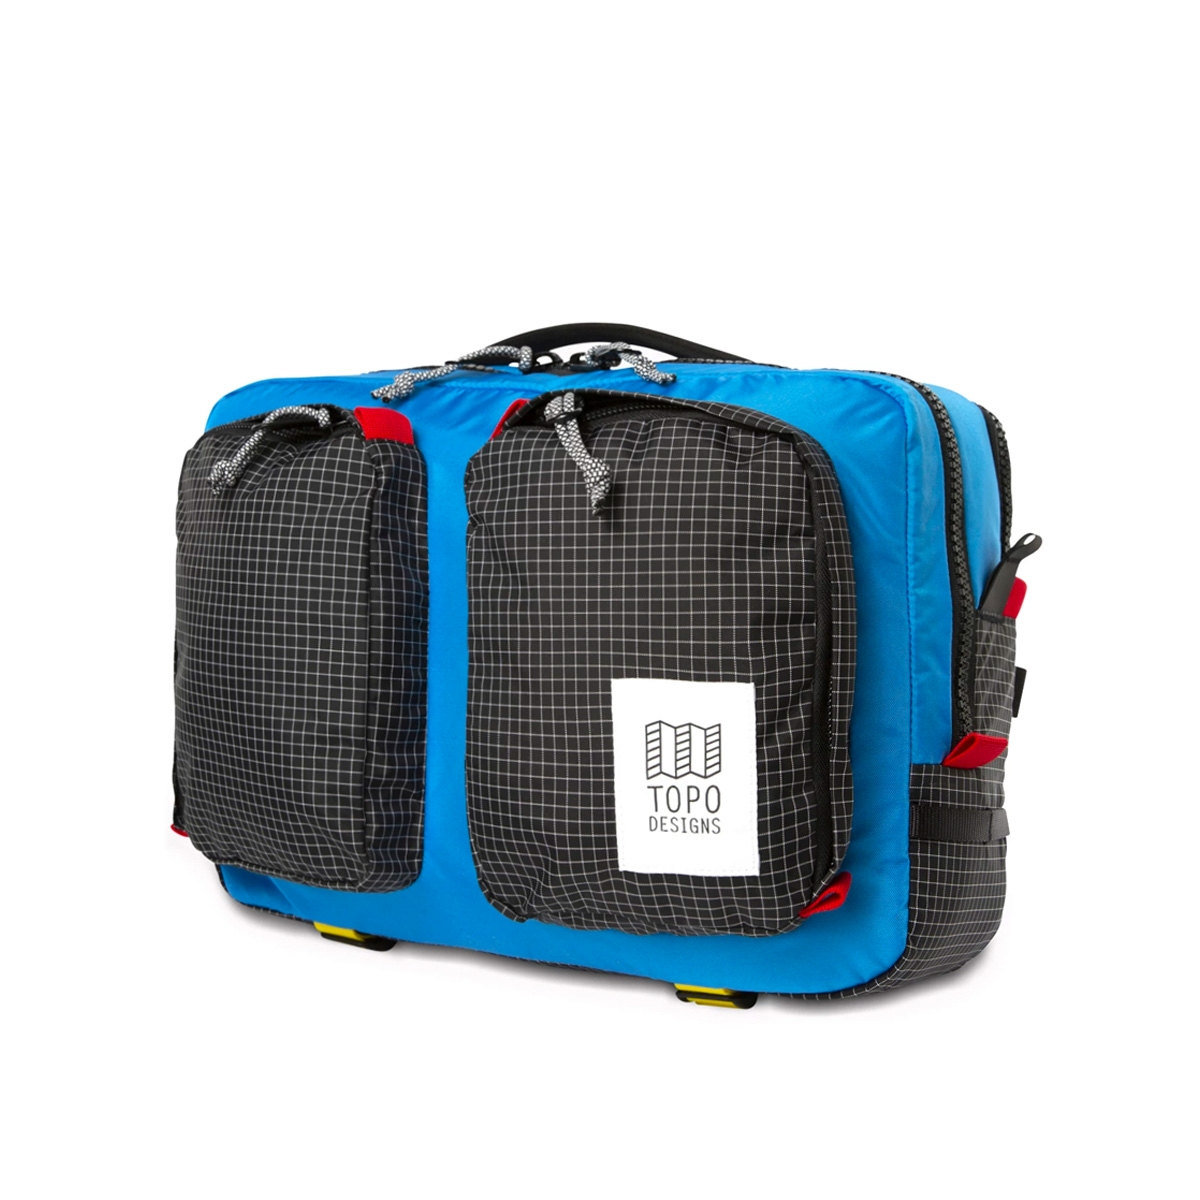 Topo Designs Global Briefcase Blue/Black, the perfect bag for everyday carry